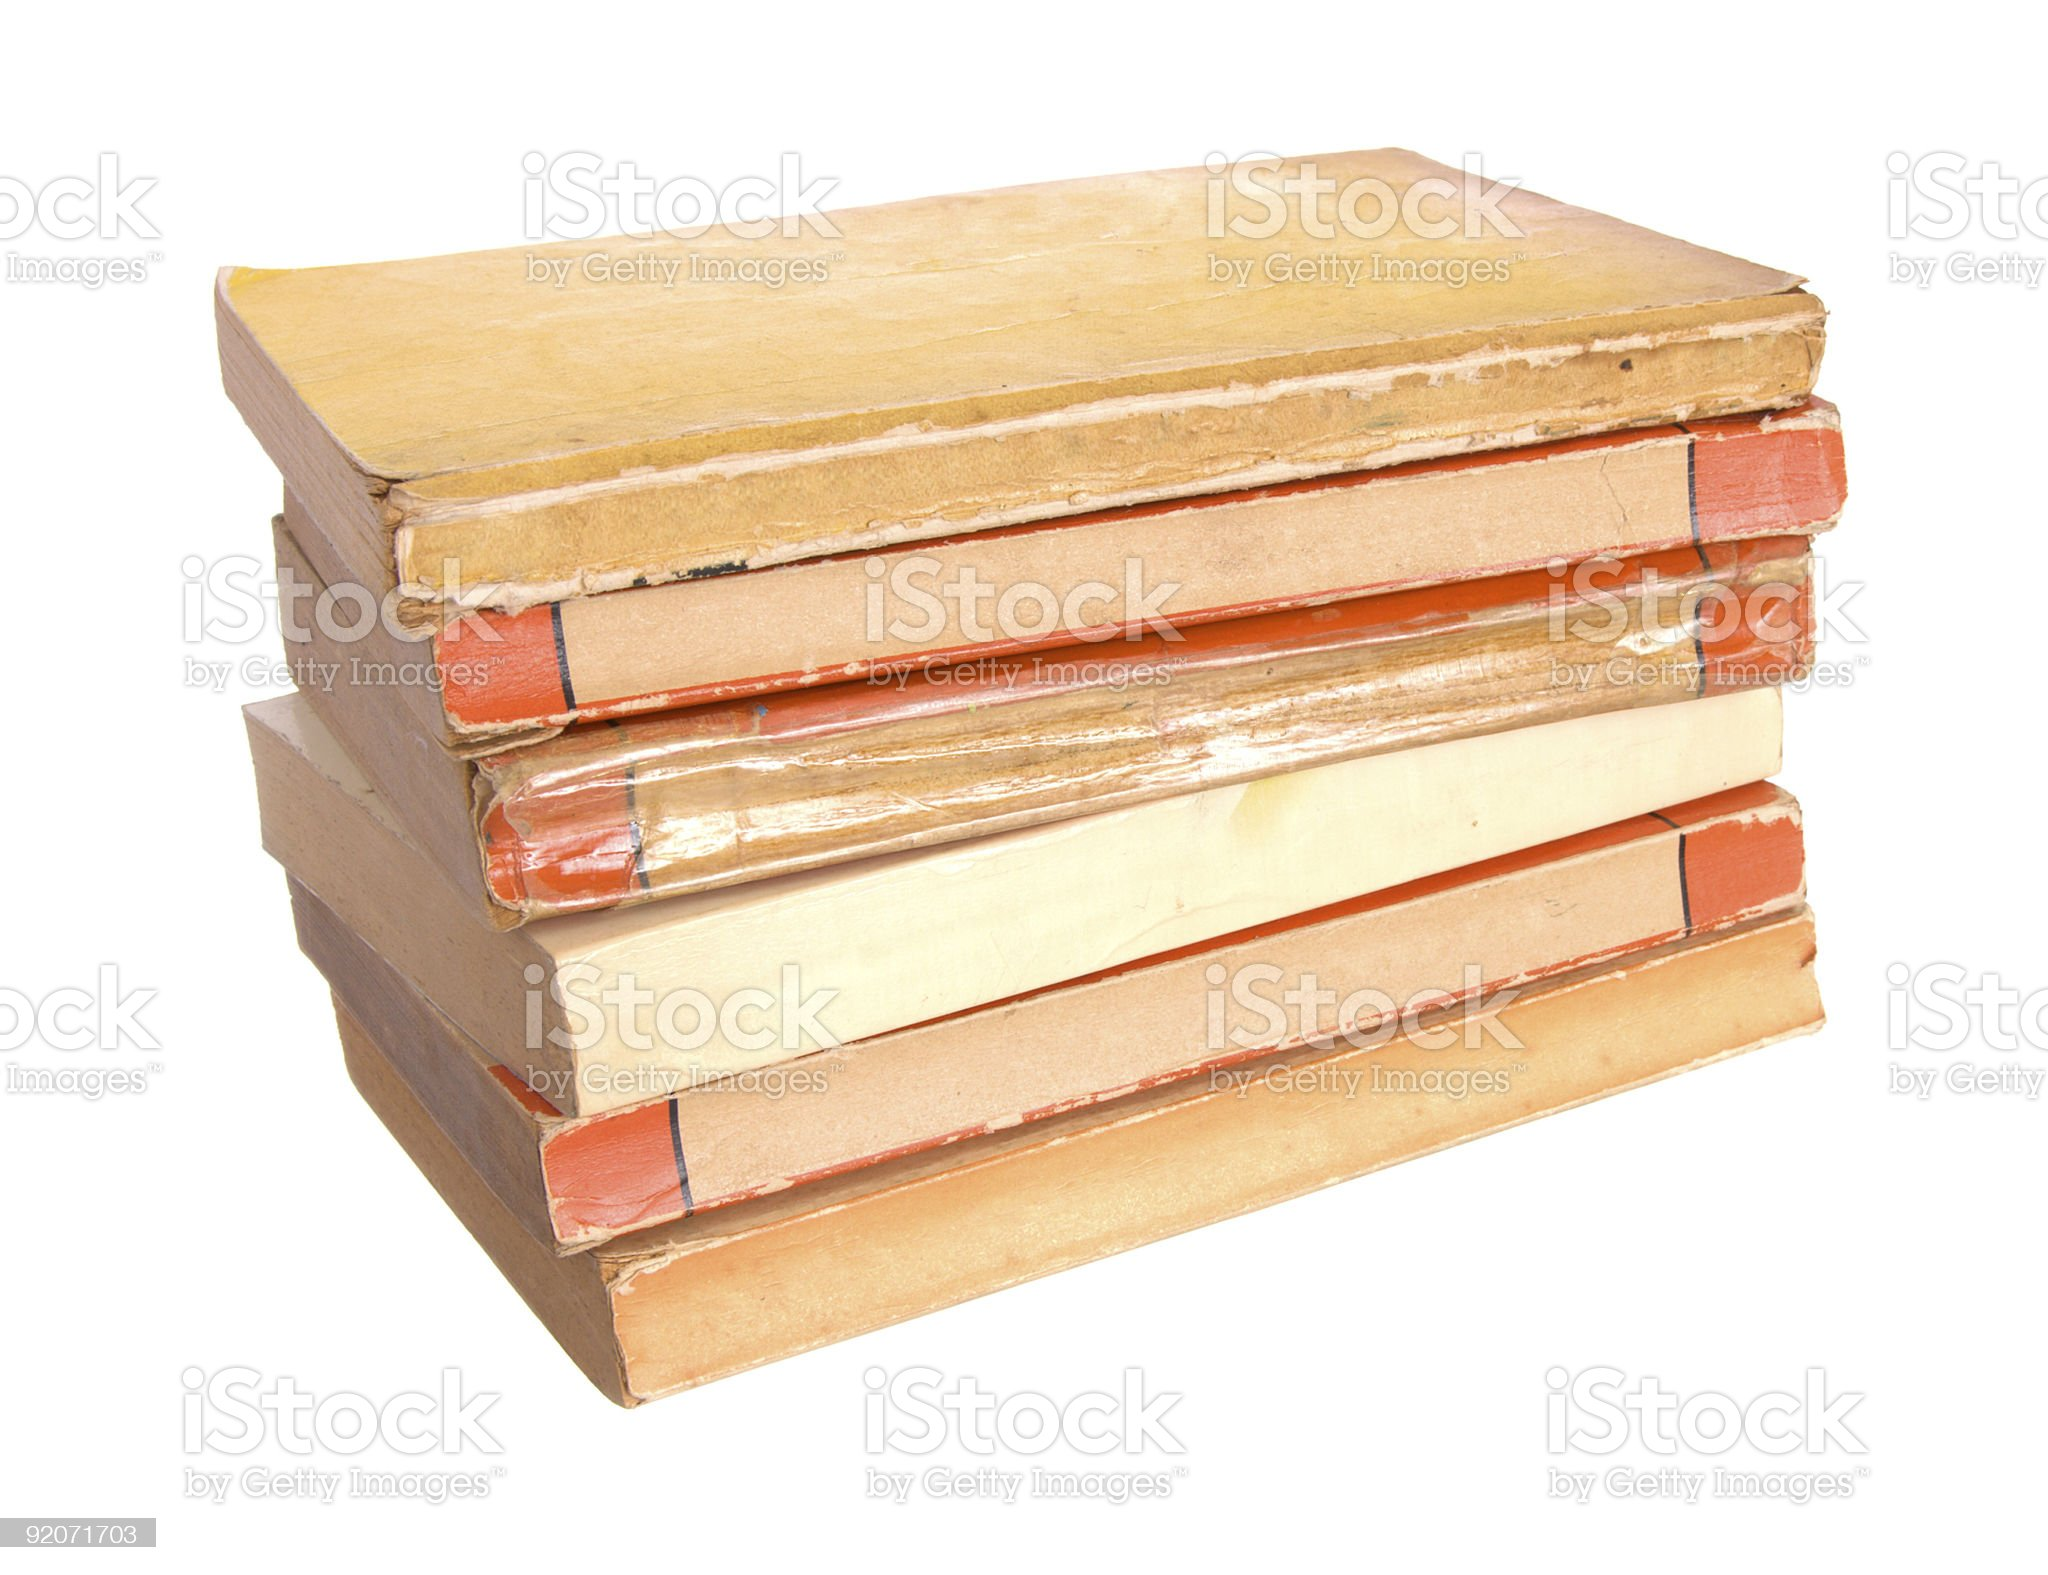 Old paperback books royalty-free stock photo